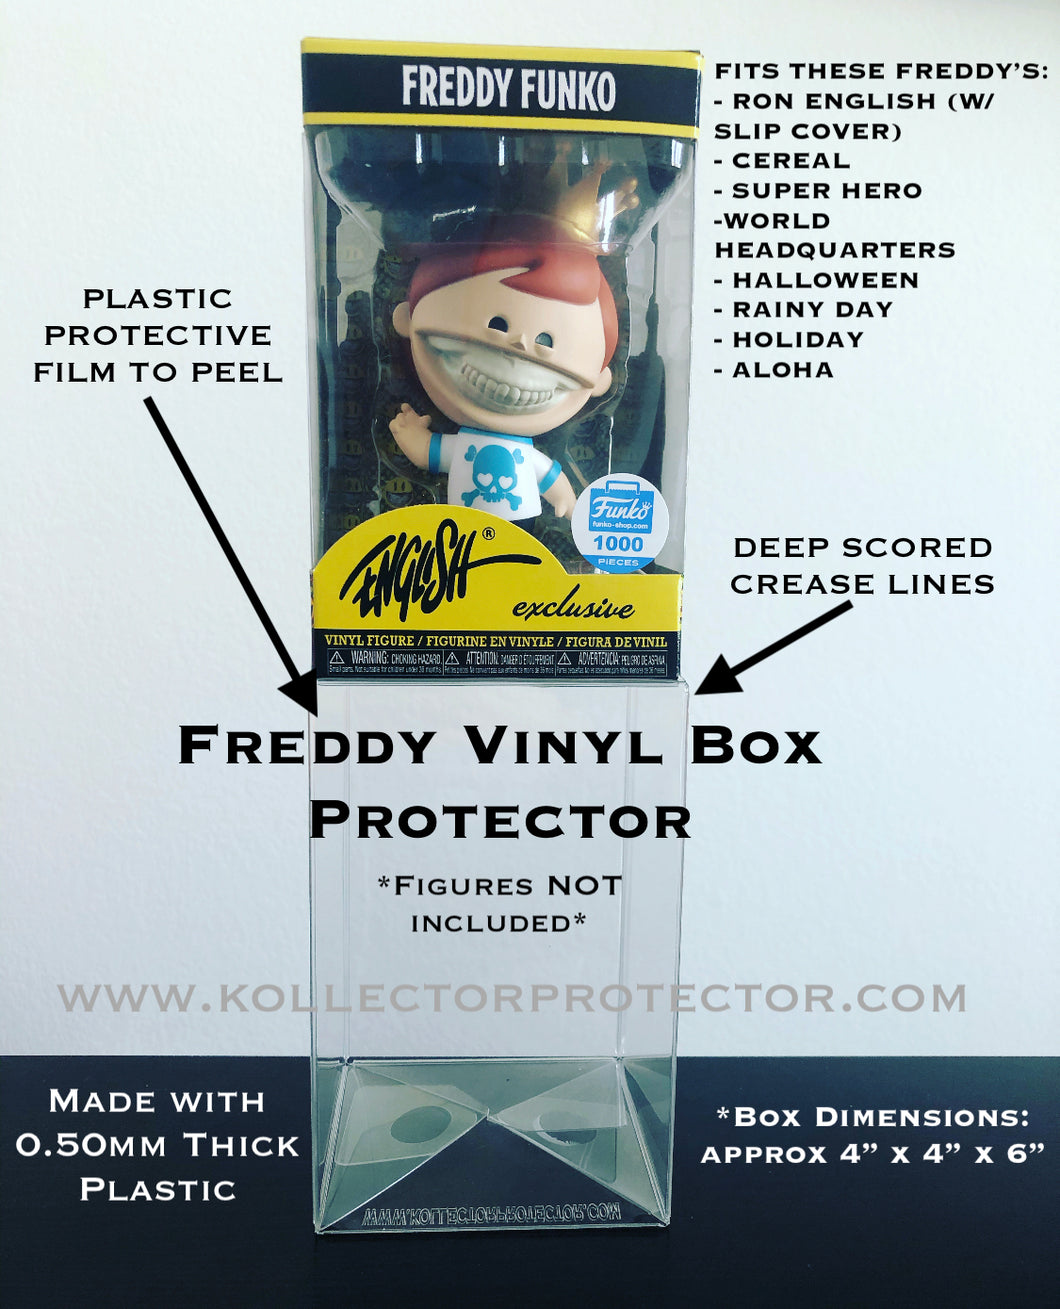 FREDDY FUNKO VINYL (Smaller Size) Box Protector made with 0.50mm thick PET Acid-Free Plastic - Please Read Description